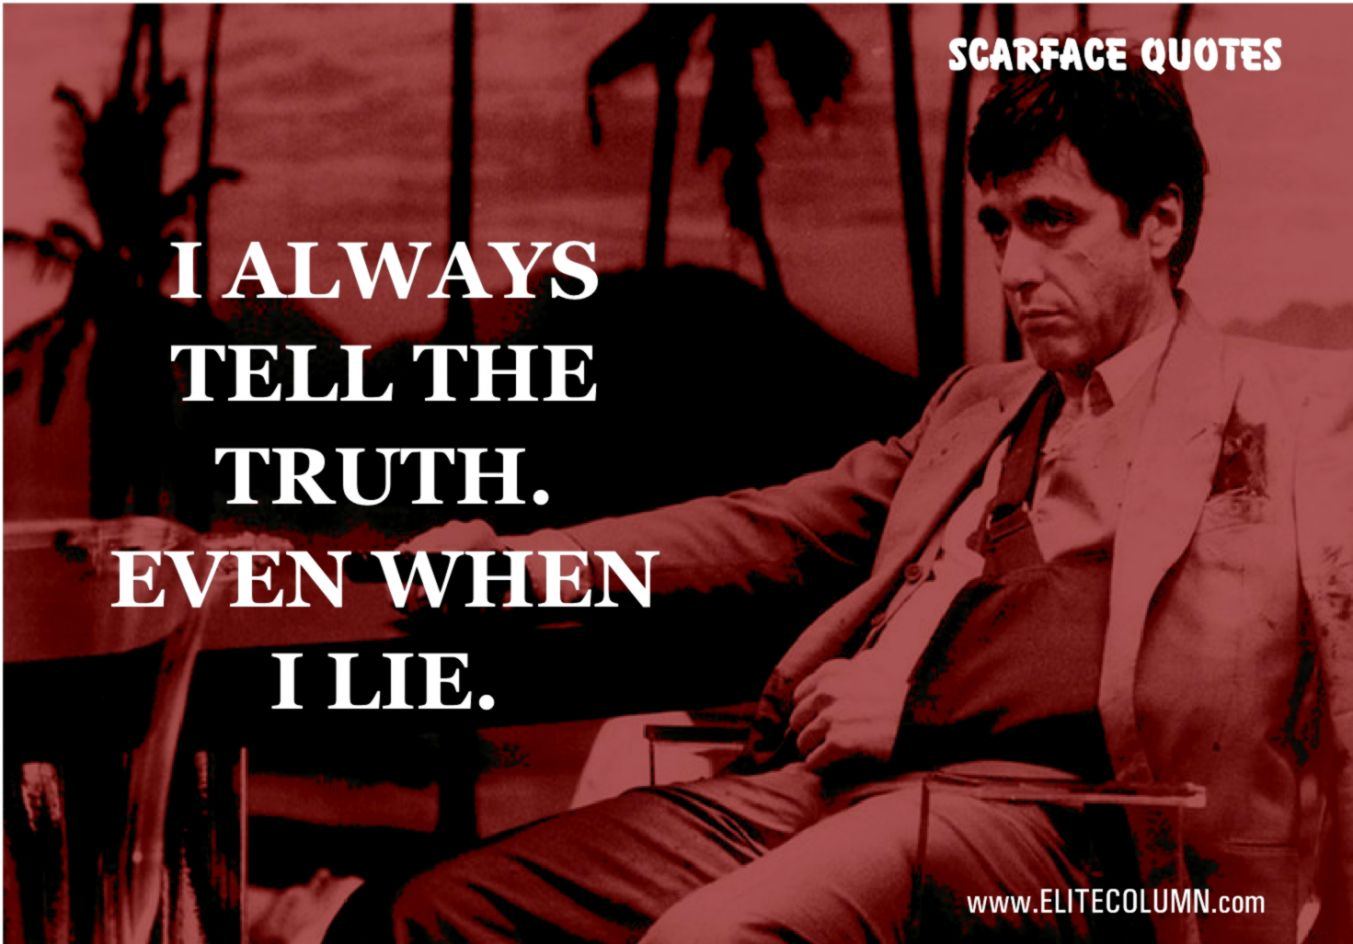 14 Best Scarface Quotes Only For 18 Years Old and Above EliteColumn